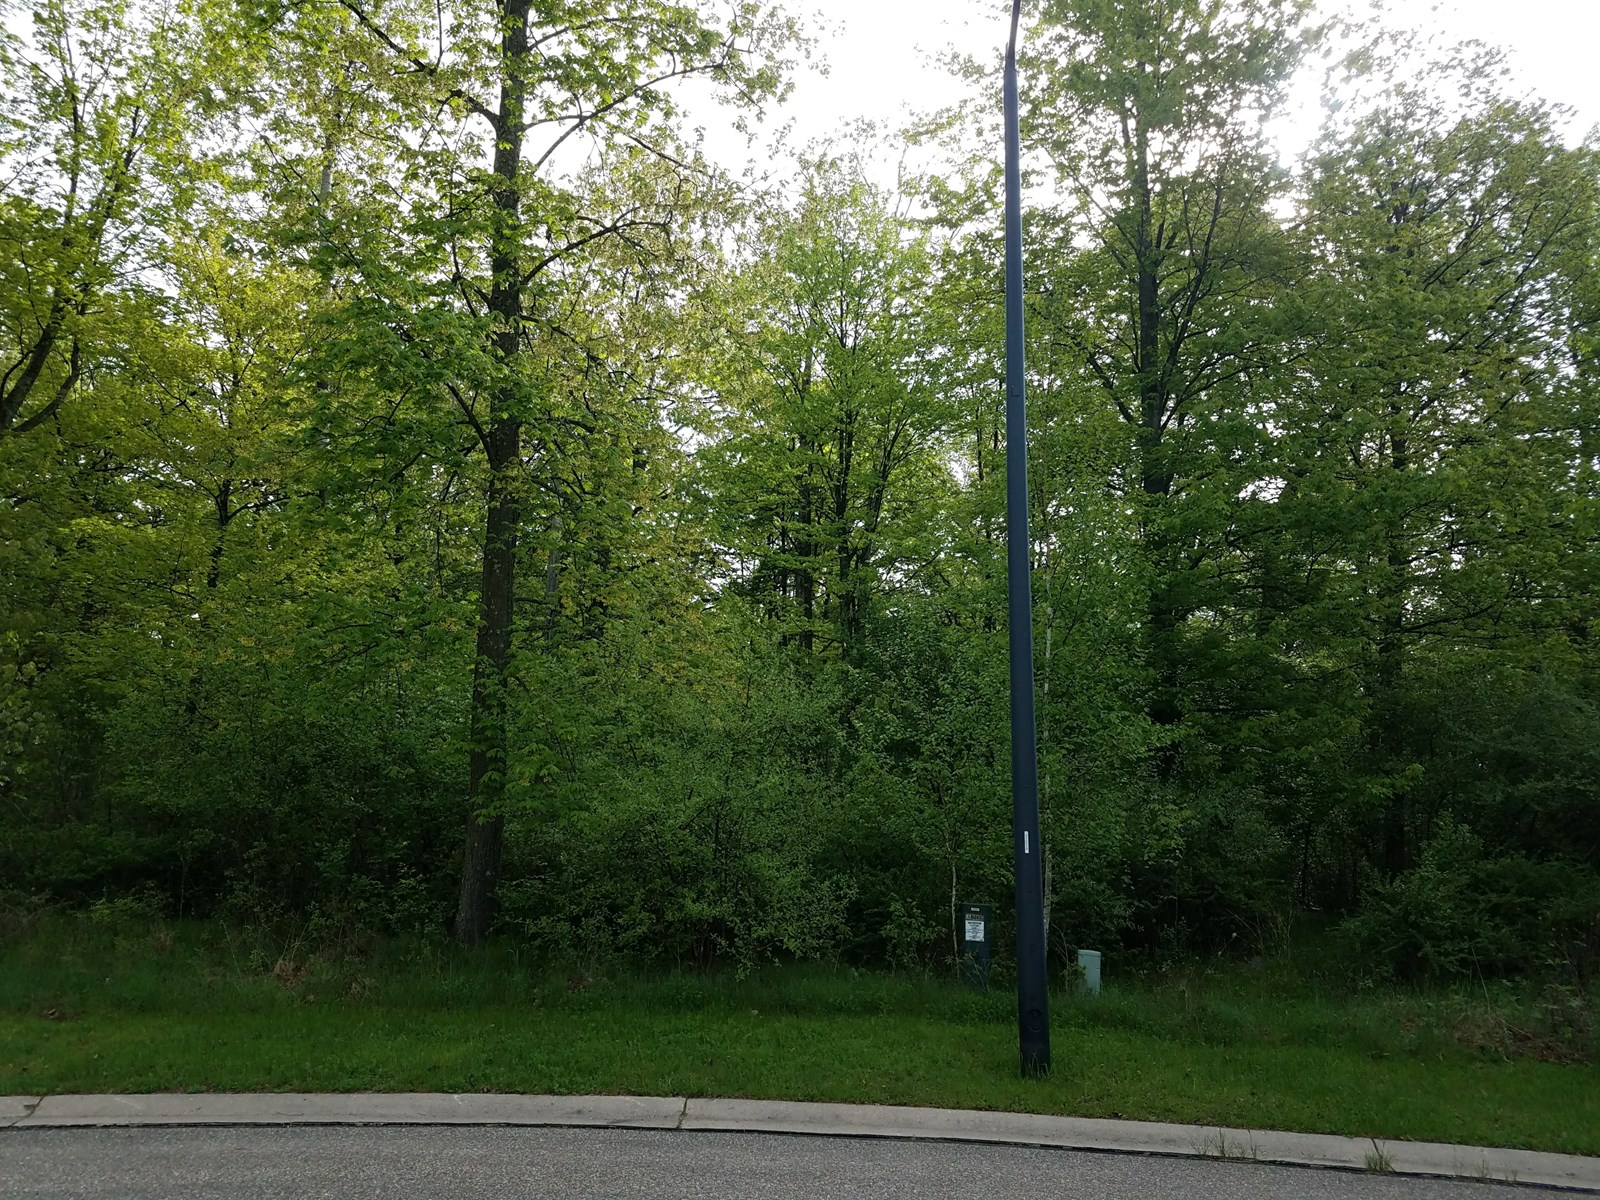 Vacant Lot for Sale in the City of Waupaca, Waupaca Co, WI